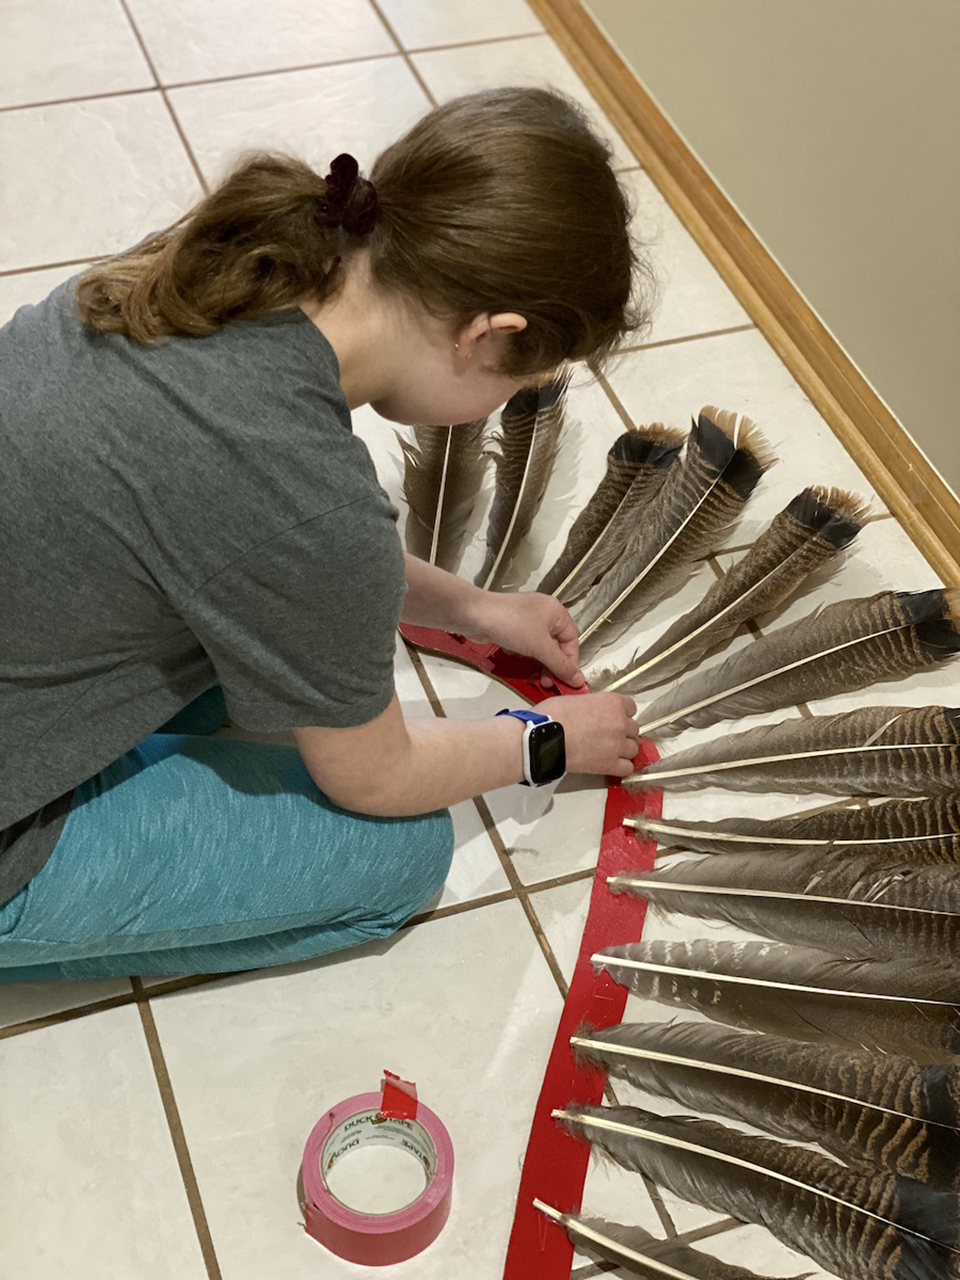 With the feathers glued to the supports, Anna adds duct tape for additonal support